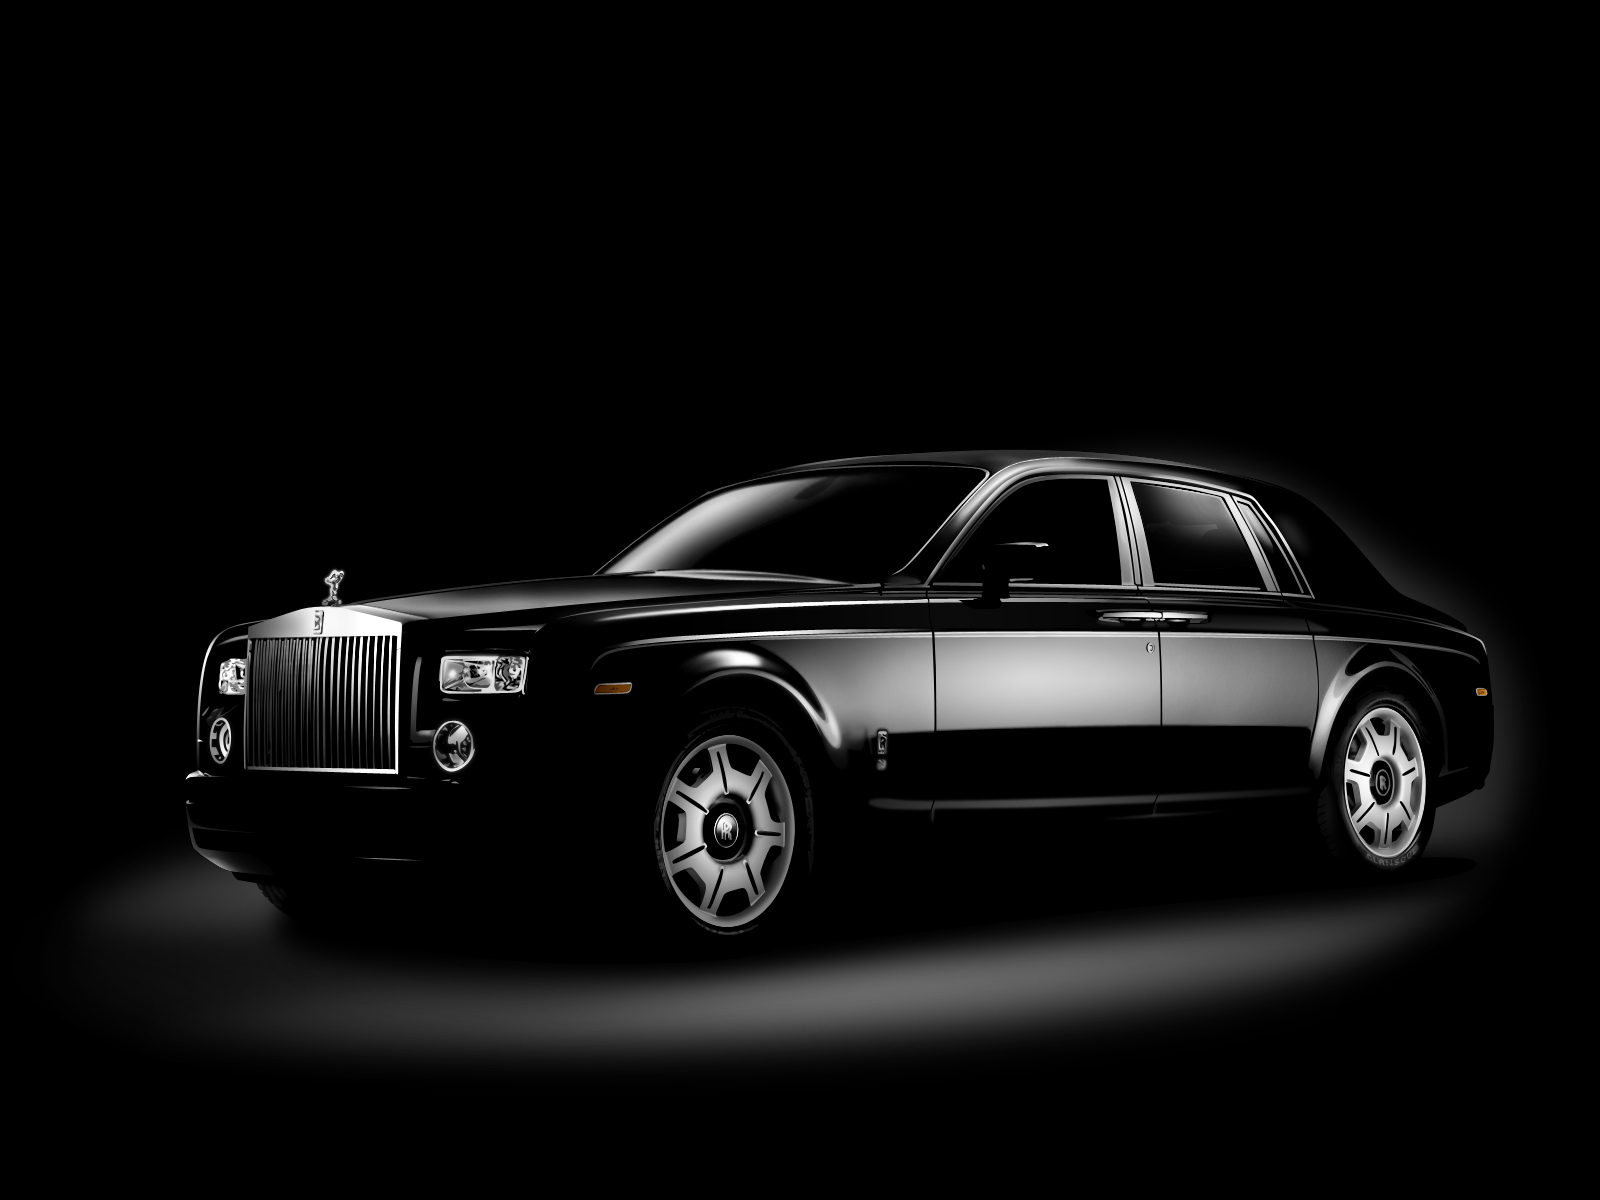 Rolls Royce Phantom by kaolincash